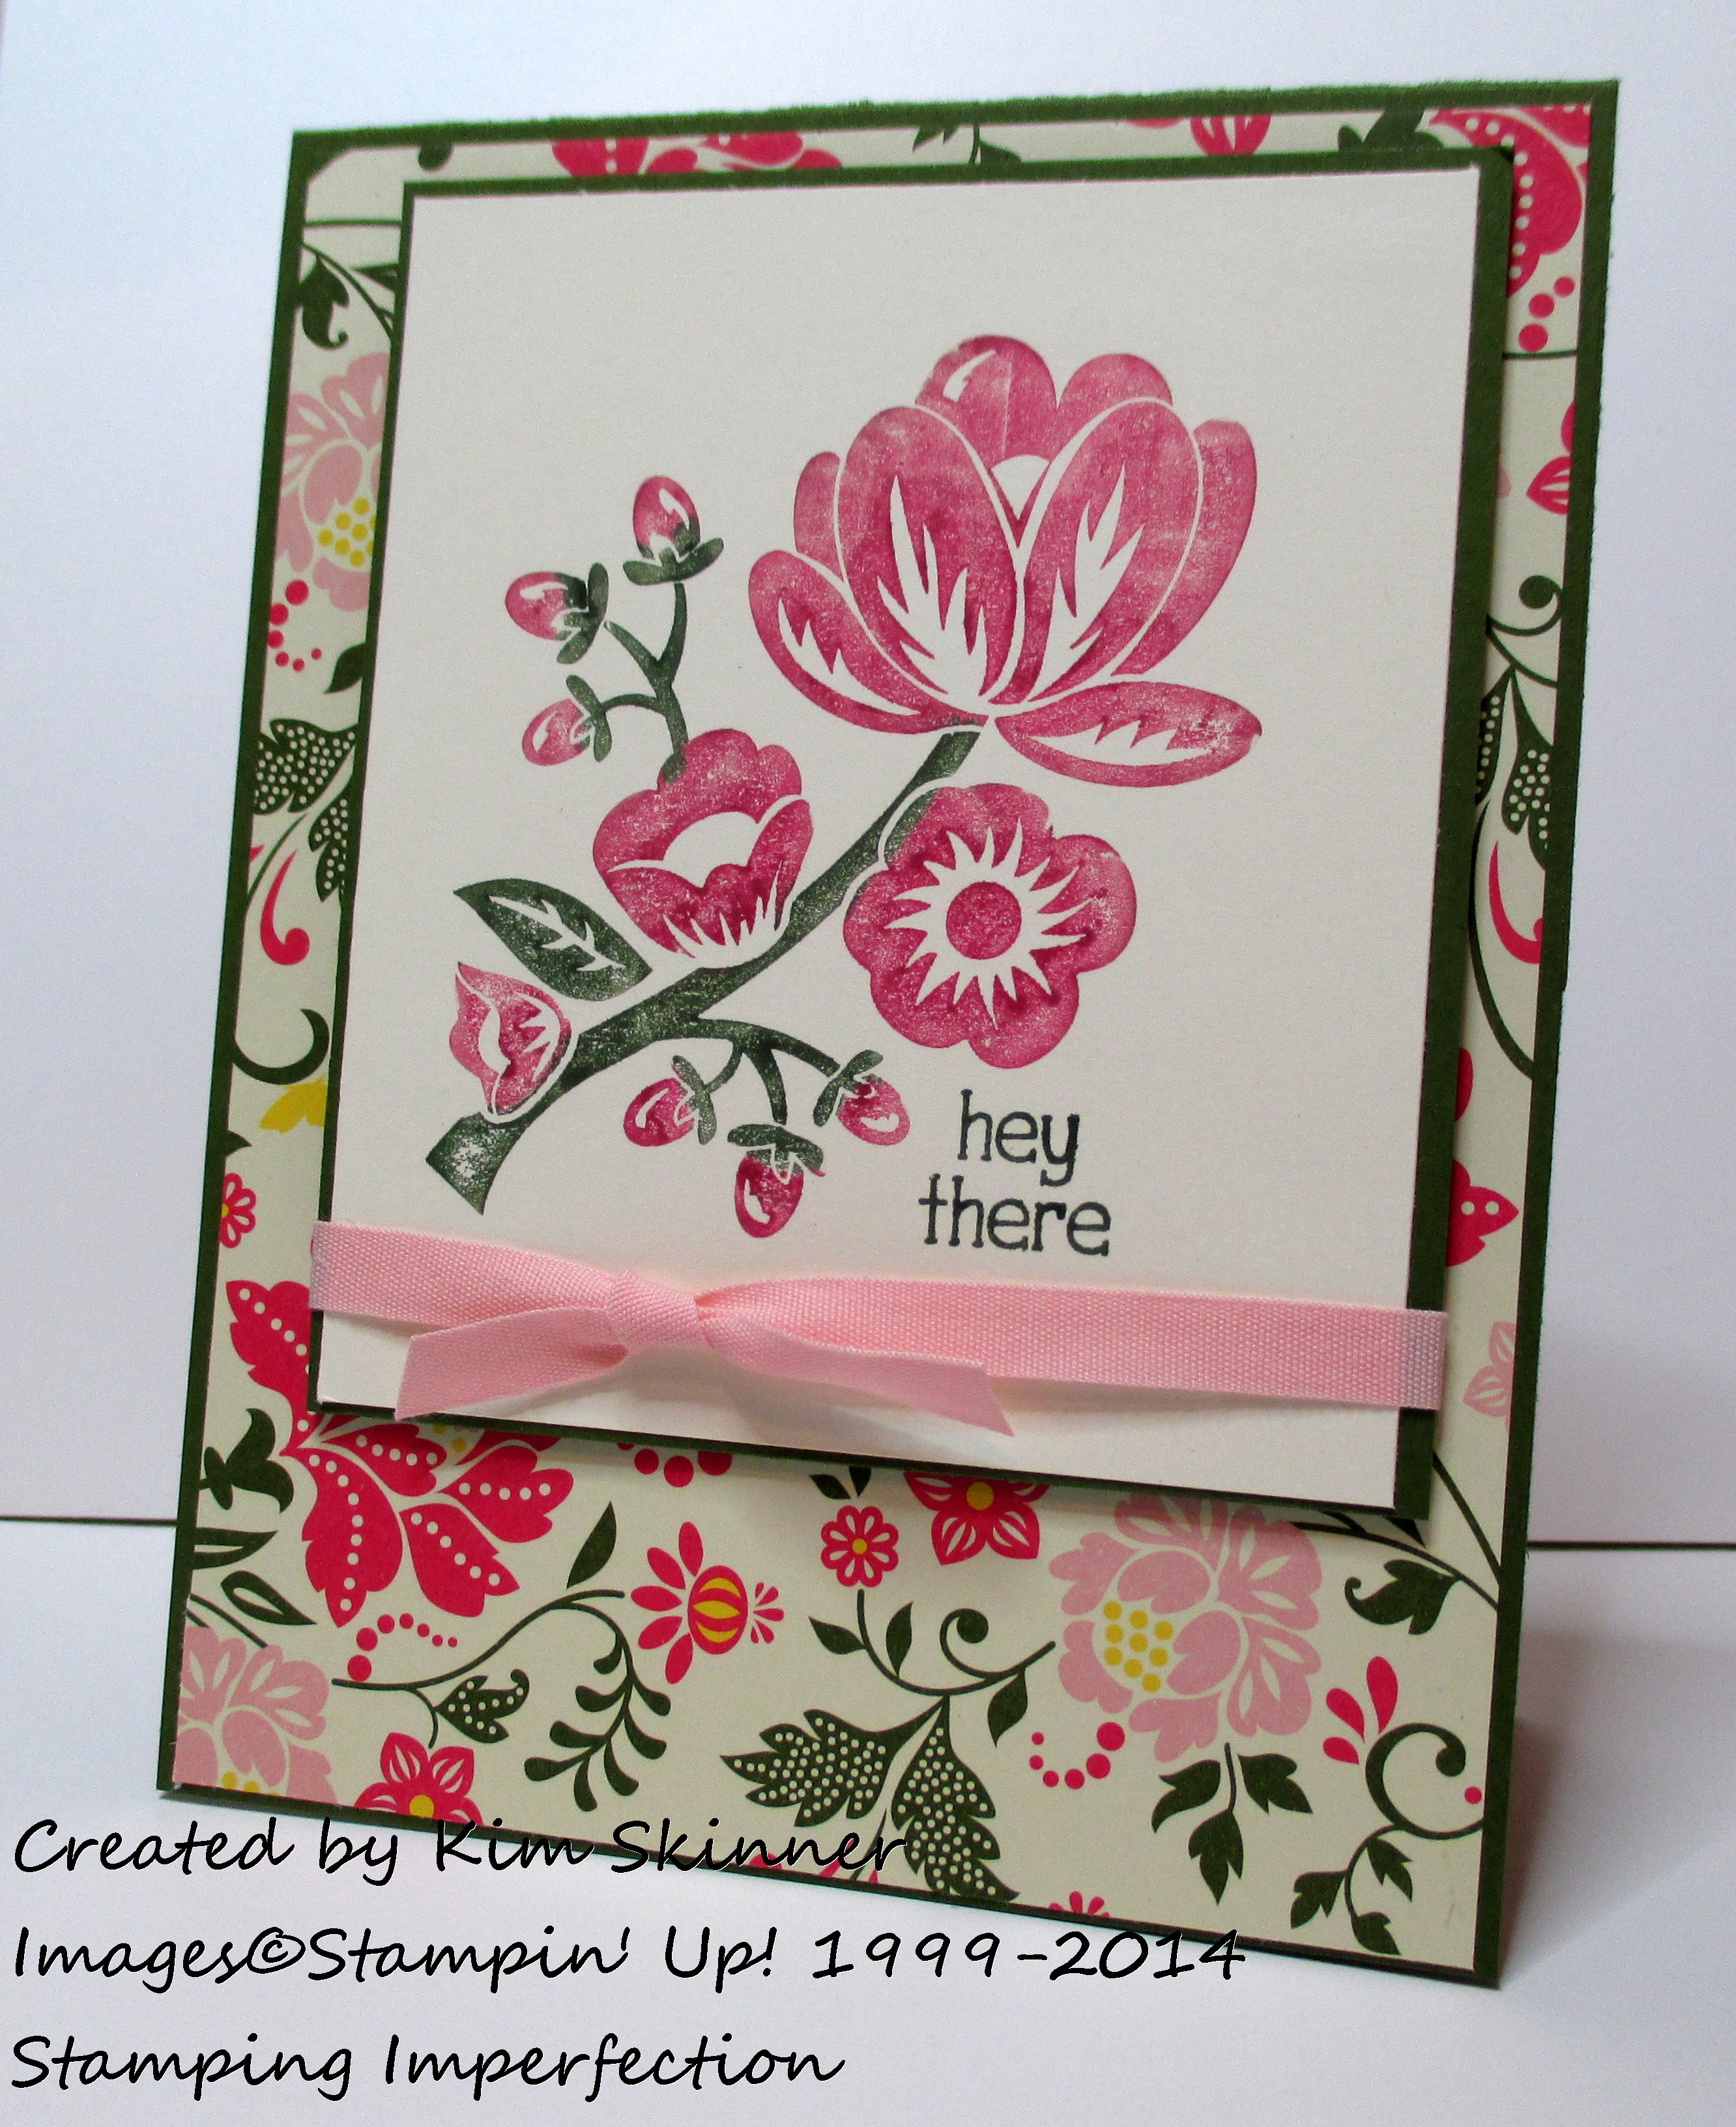 Stamping Imperfection: What to do with busy designer paper + video tutorial and free printable card recipe